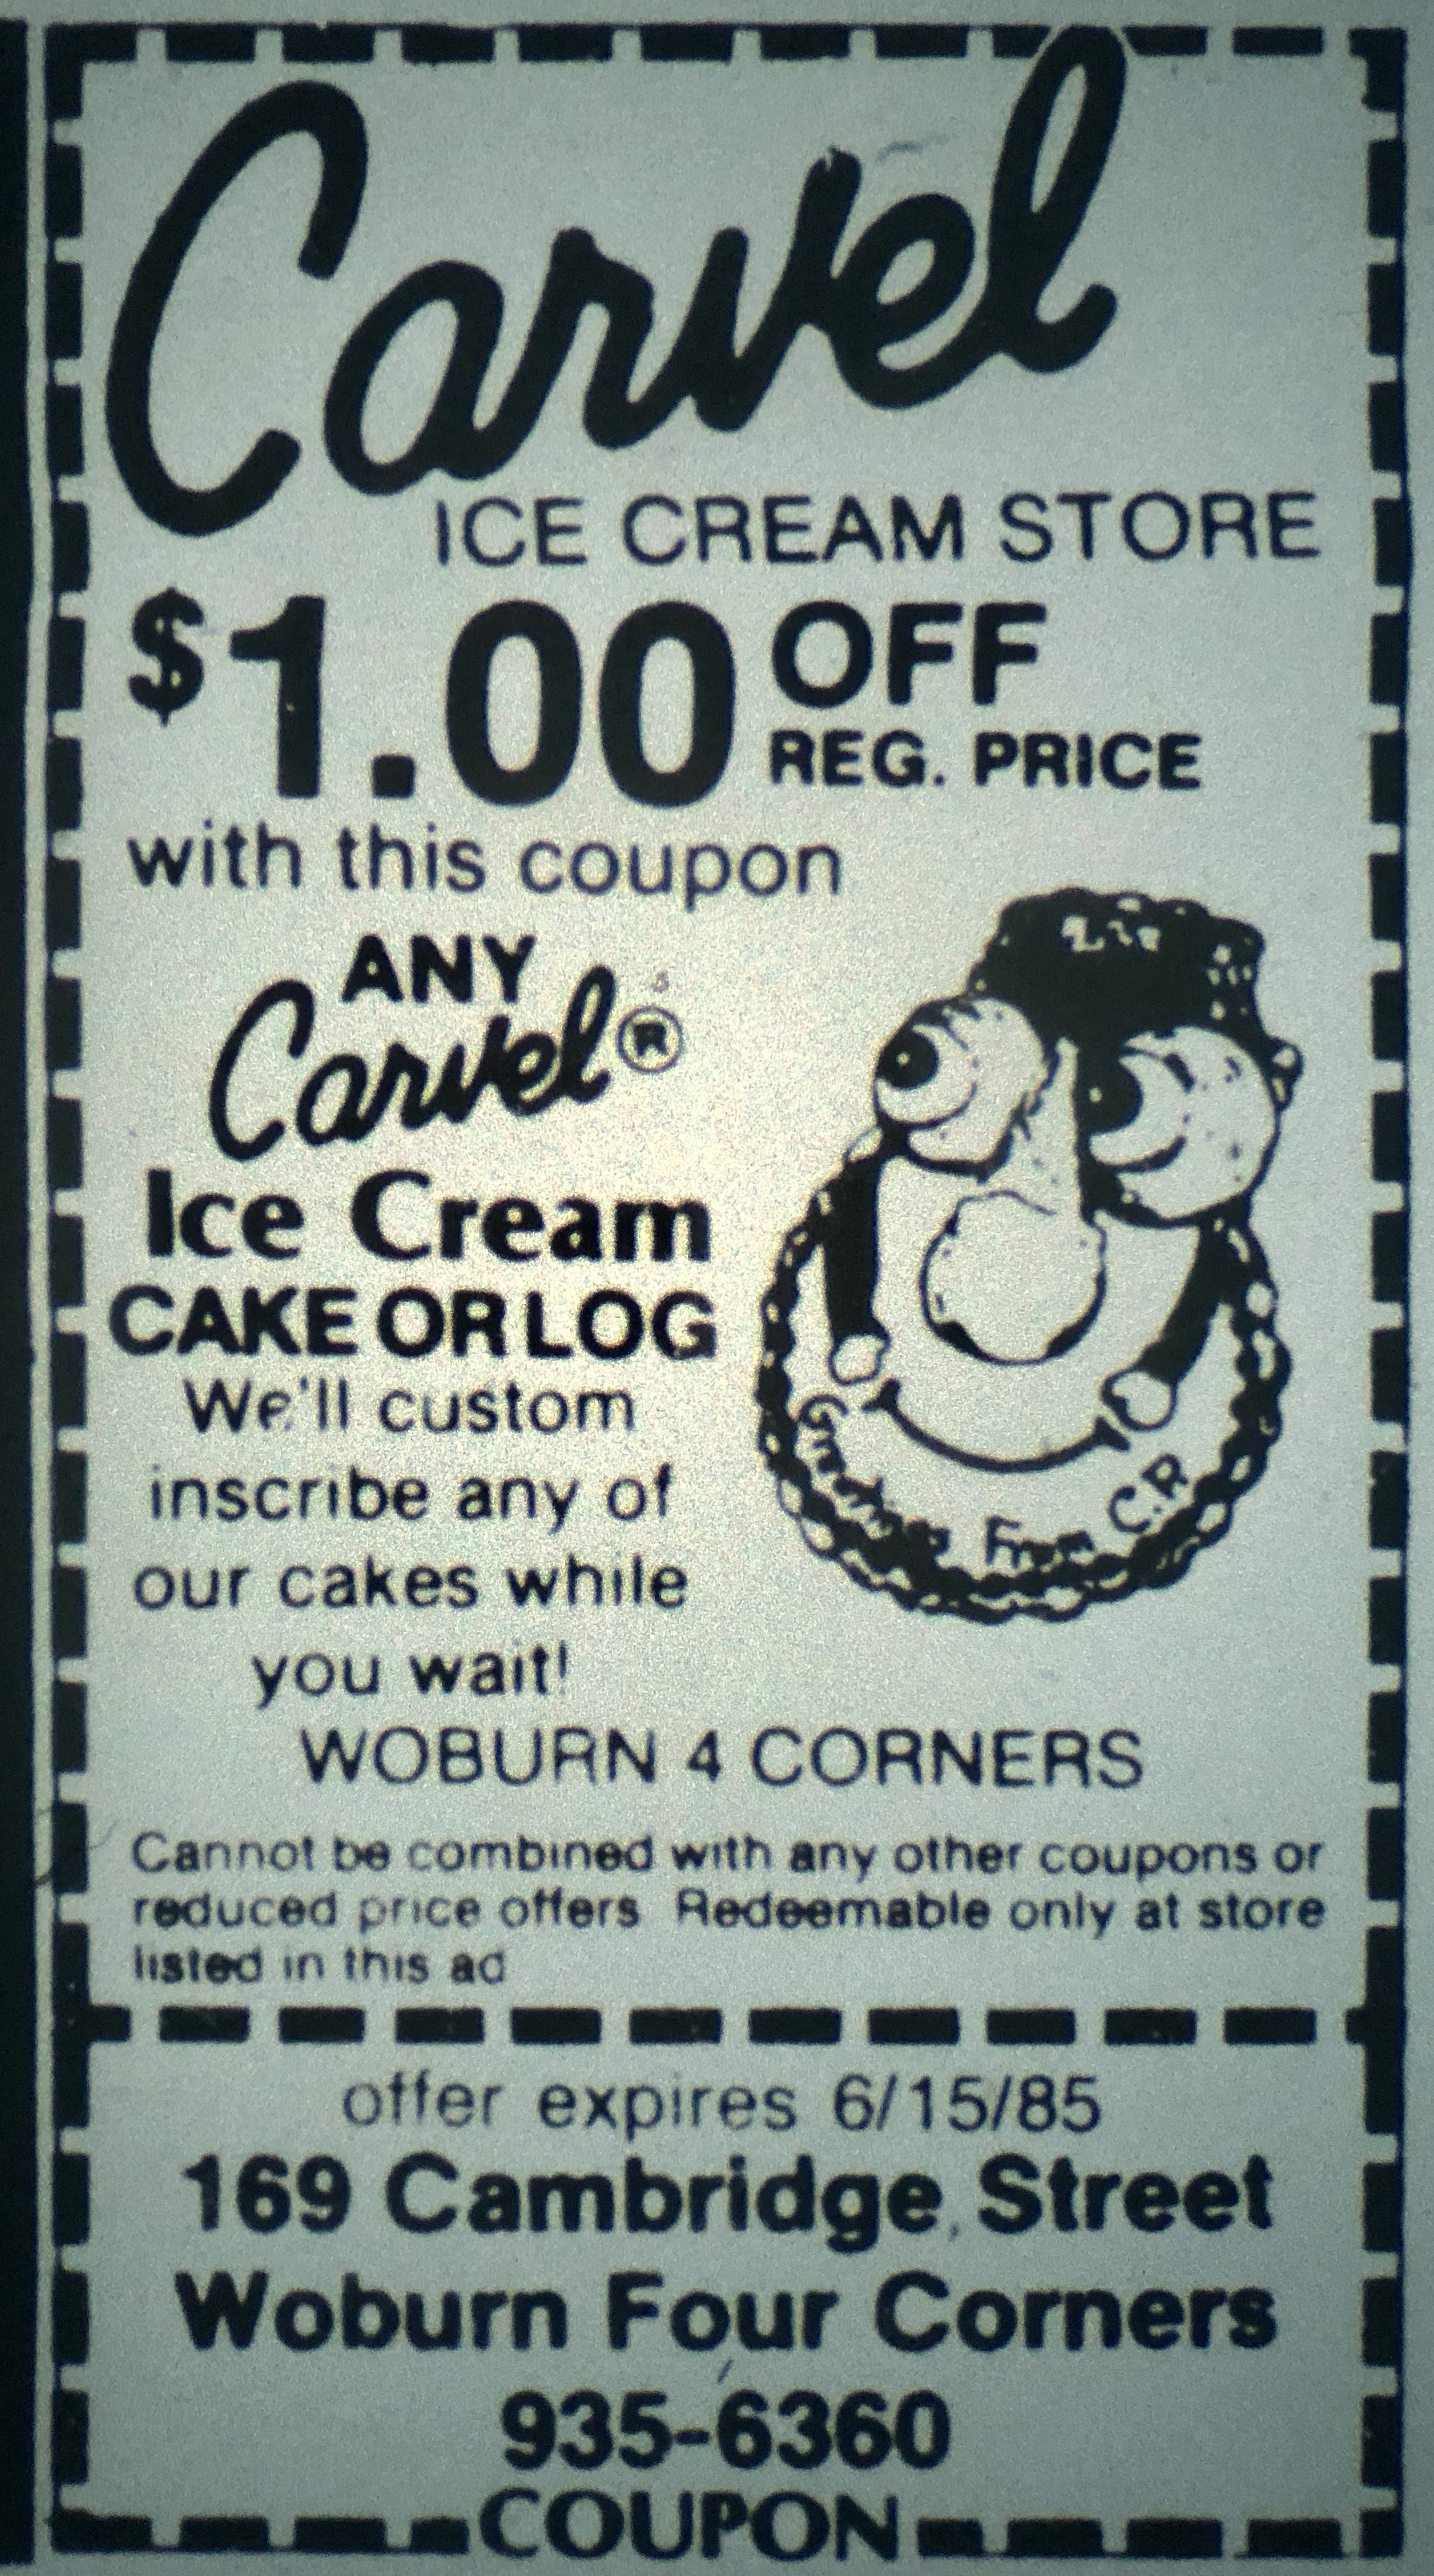 Carvel Ice Cream, Woburn MA